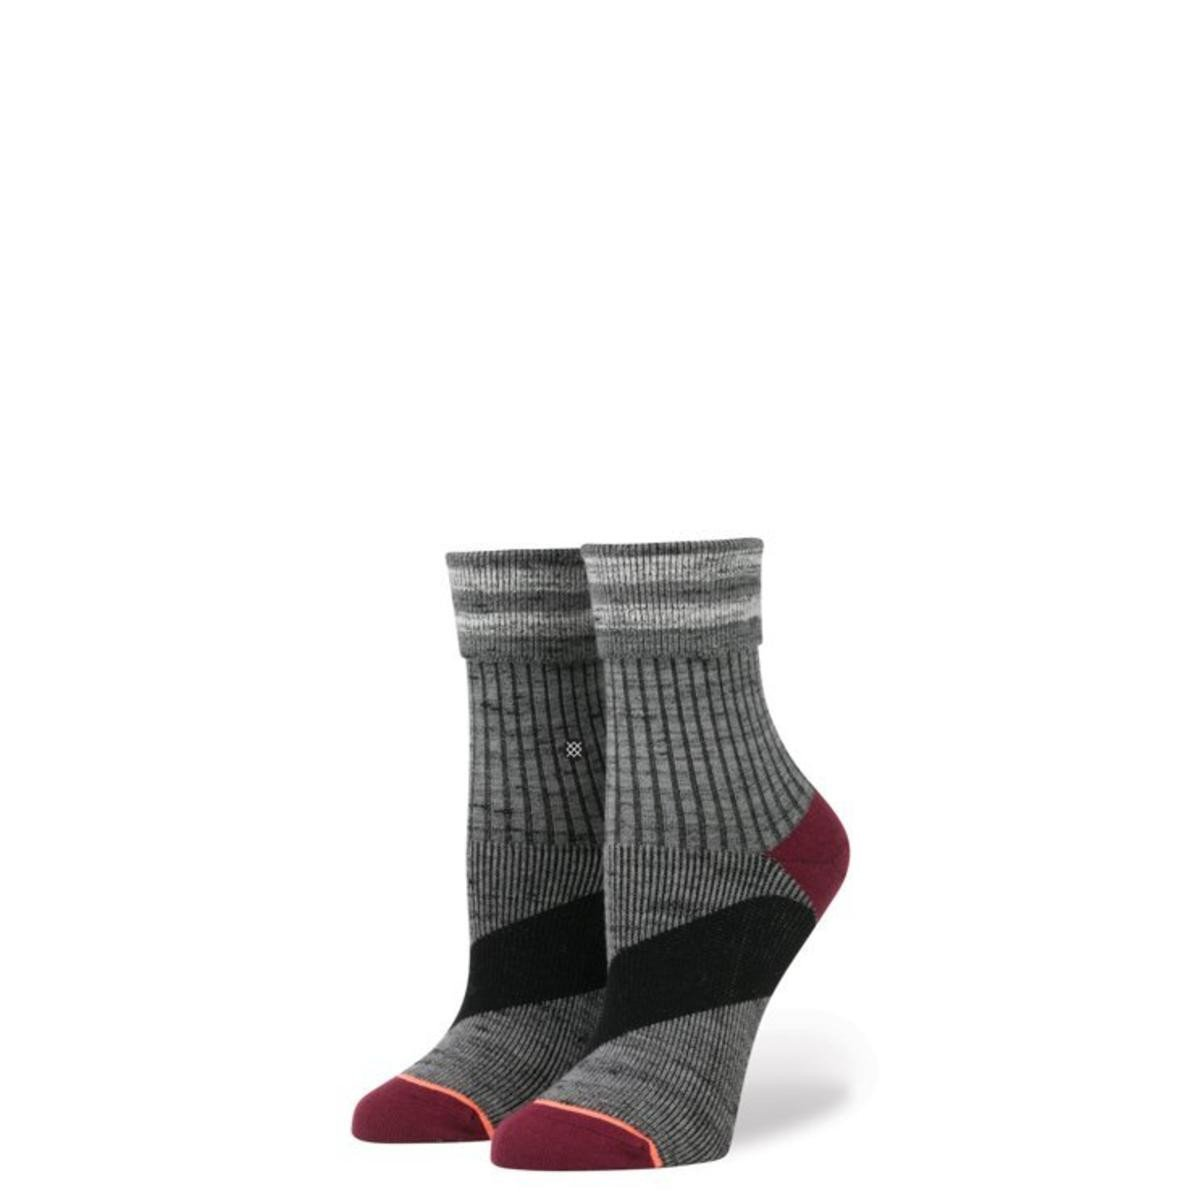 Stance for Women: Stripe Roll Cuff Anklet